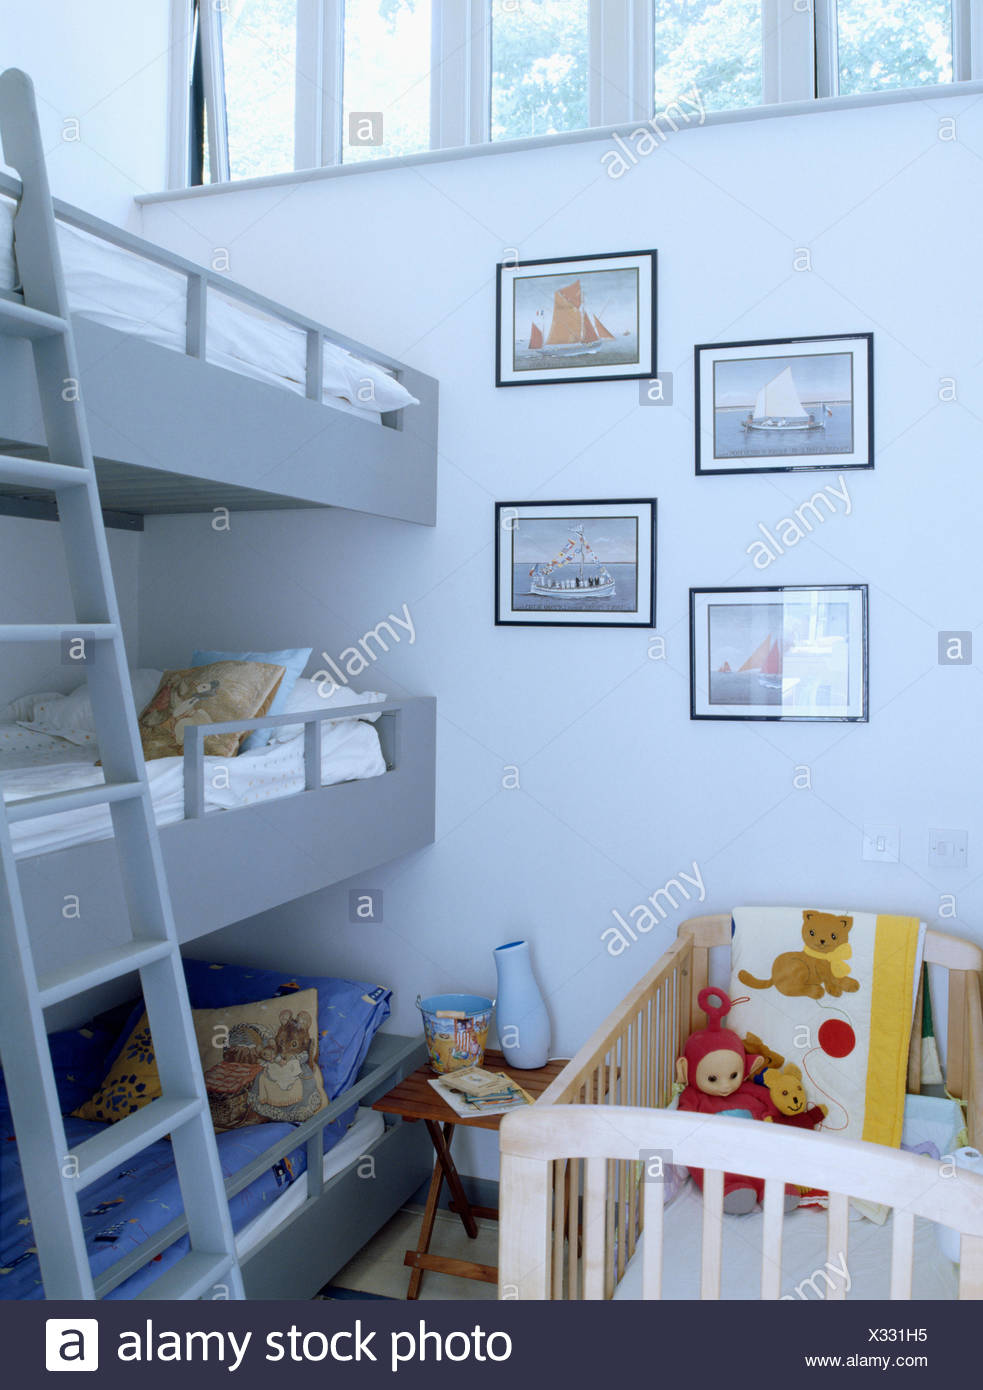 Picture of: Babies Cot And Triple Bunk Beds With Ladder In Children S Modern Bedroom Stock Photo Alamy